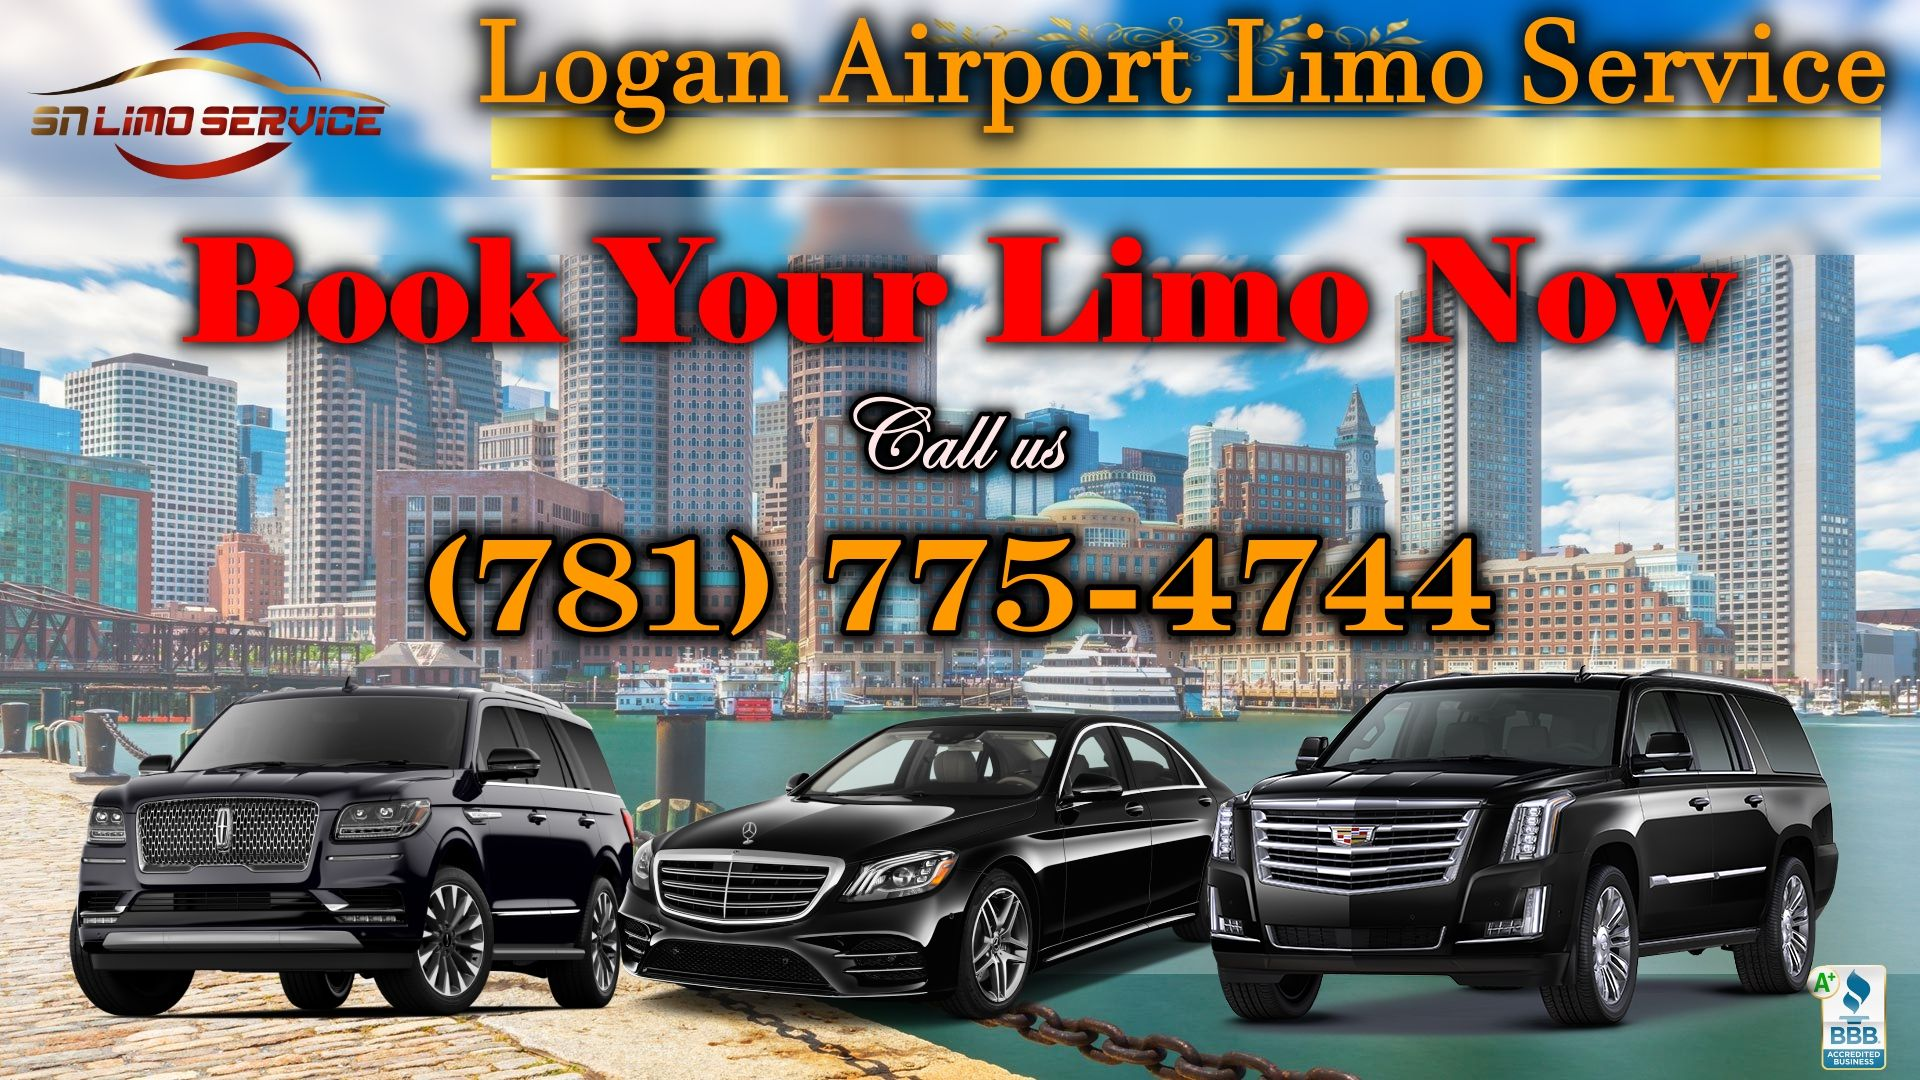 Logan Airport Limo Service in Boston and nearby